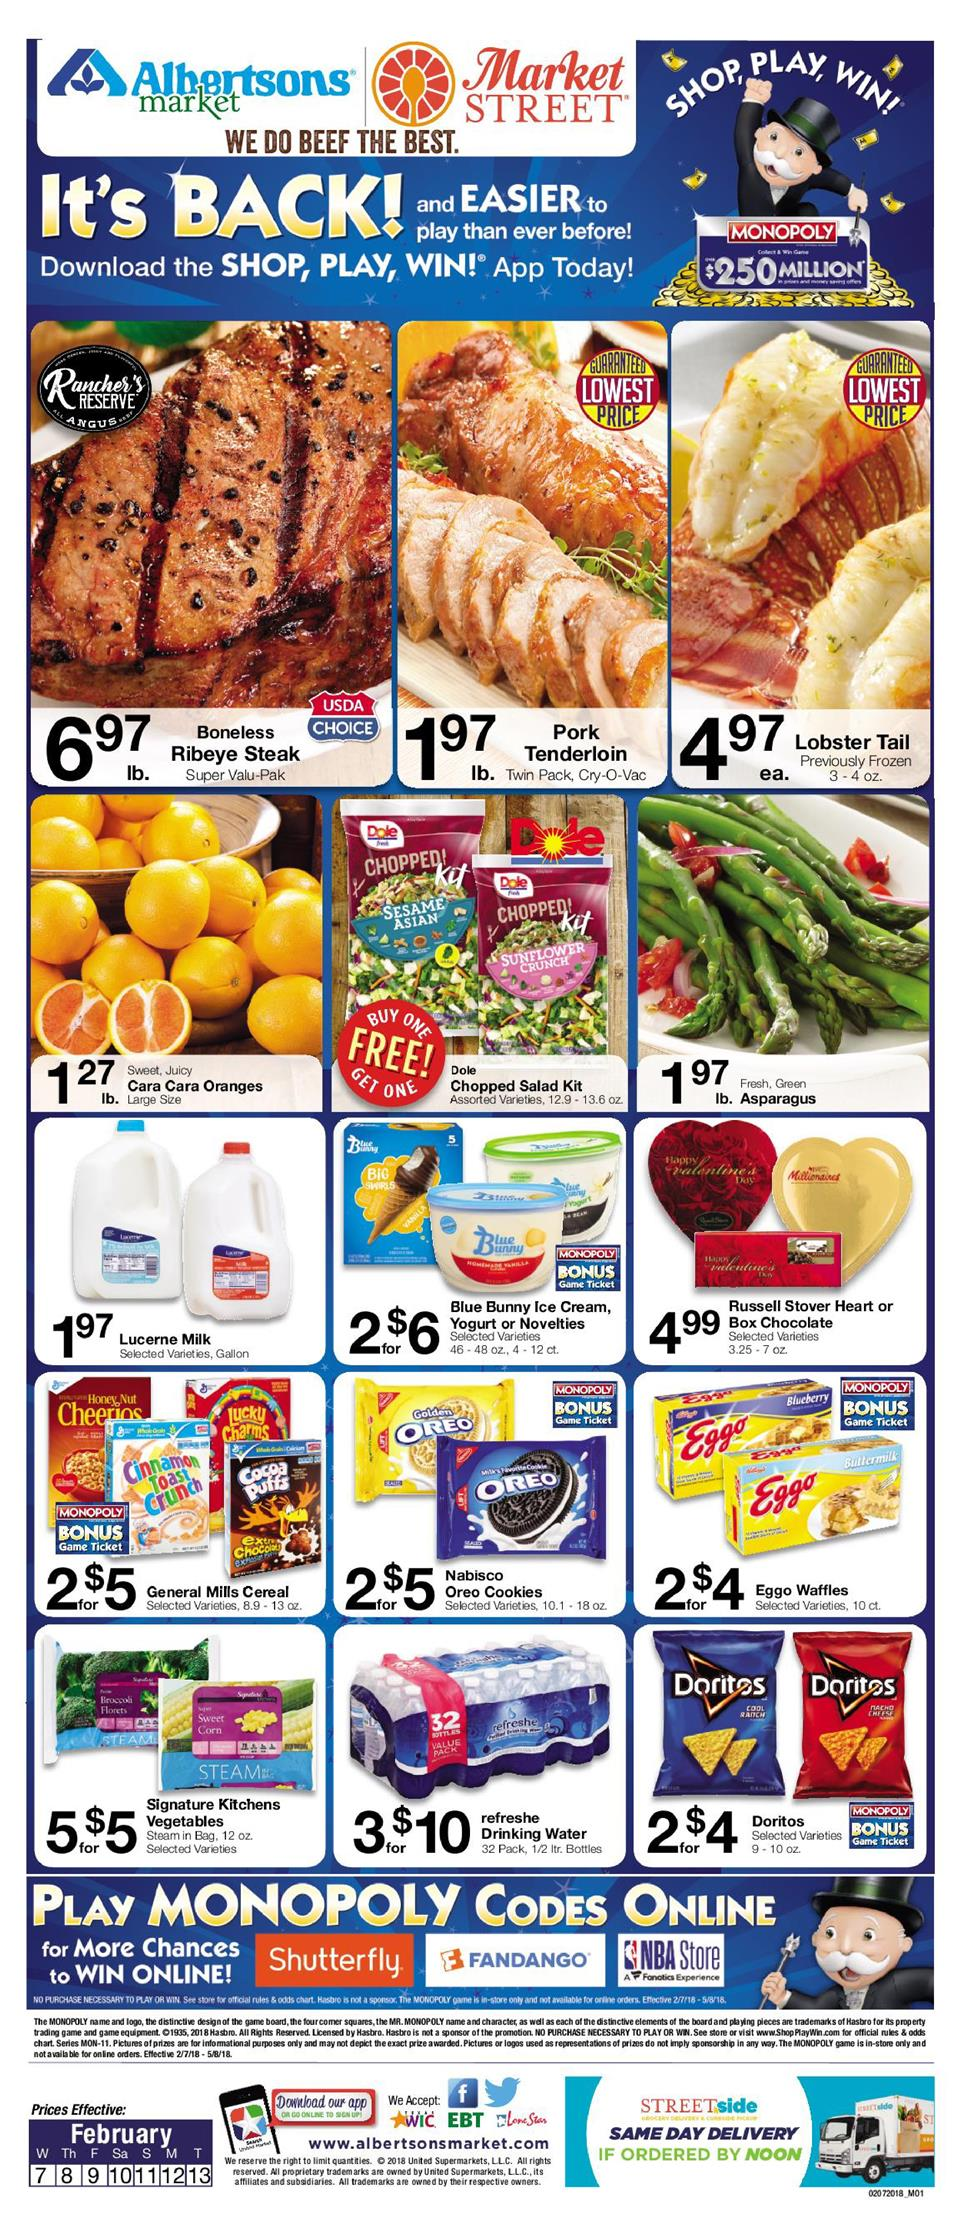 Albertsons shop online